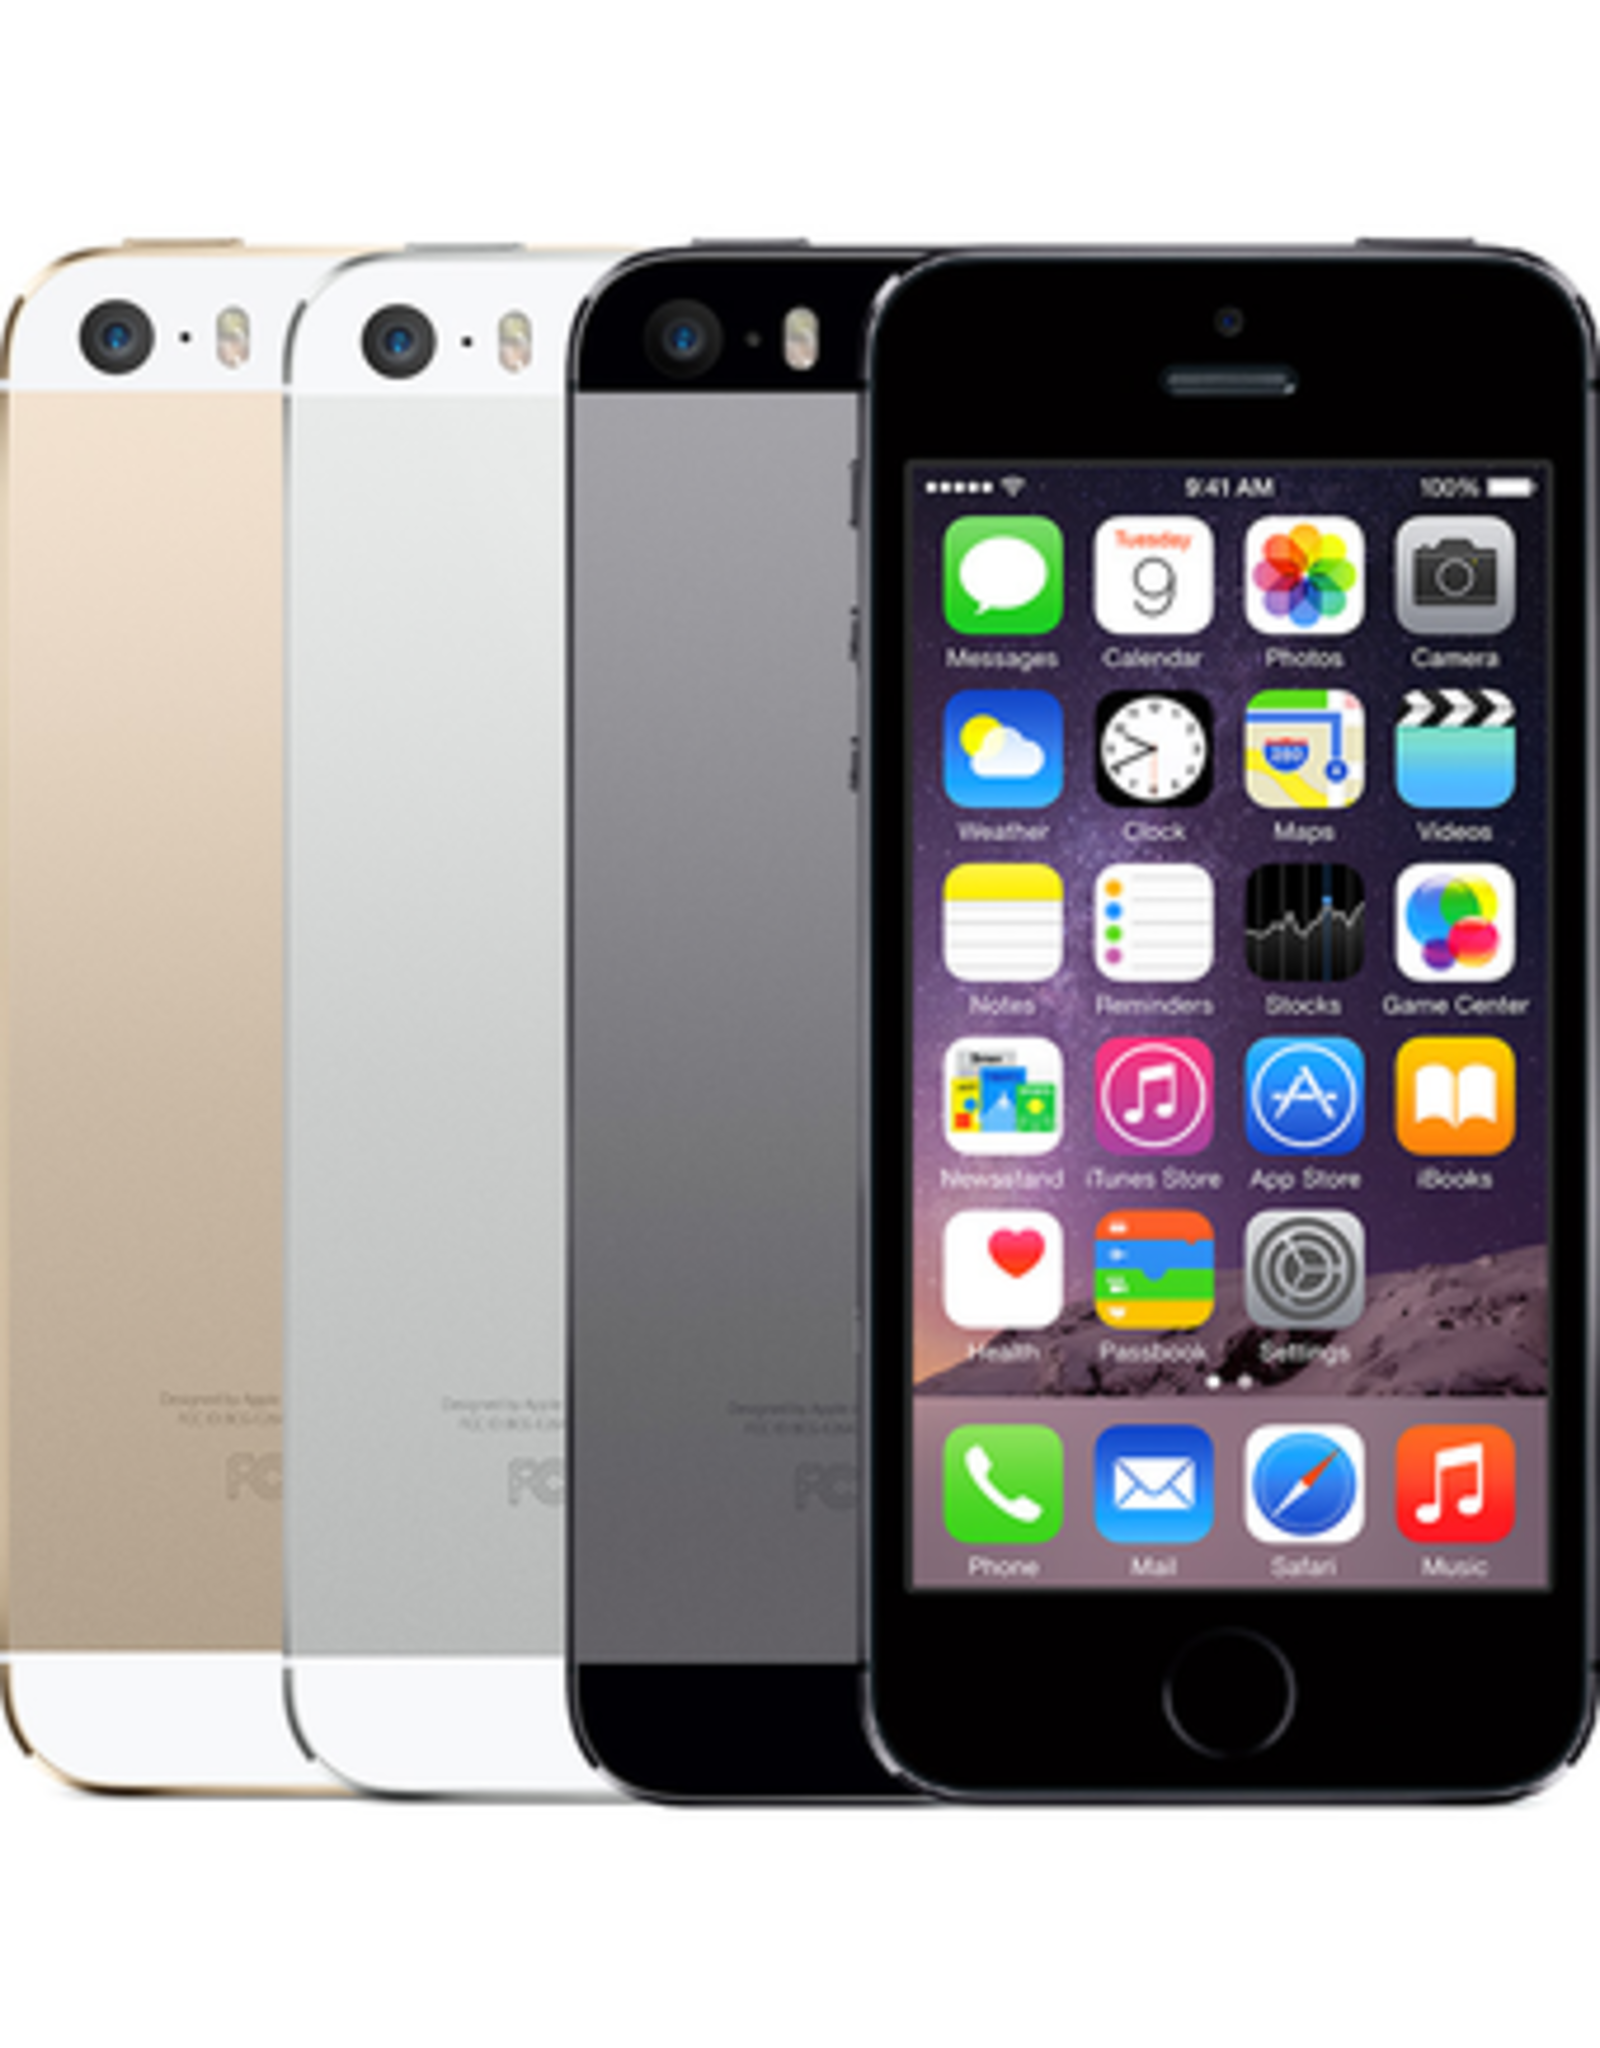 Apple iPhone 5s (32GB, Space Gray) - 30 Day Exchange